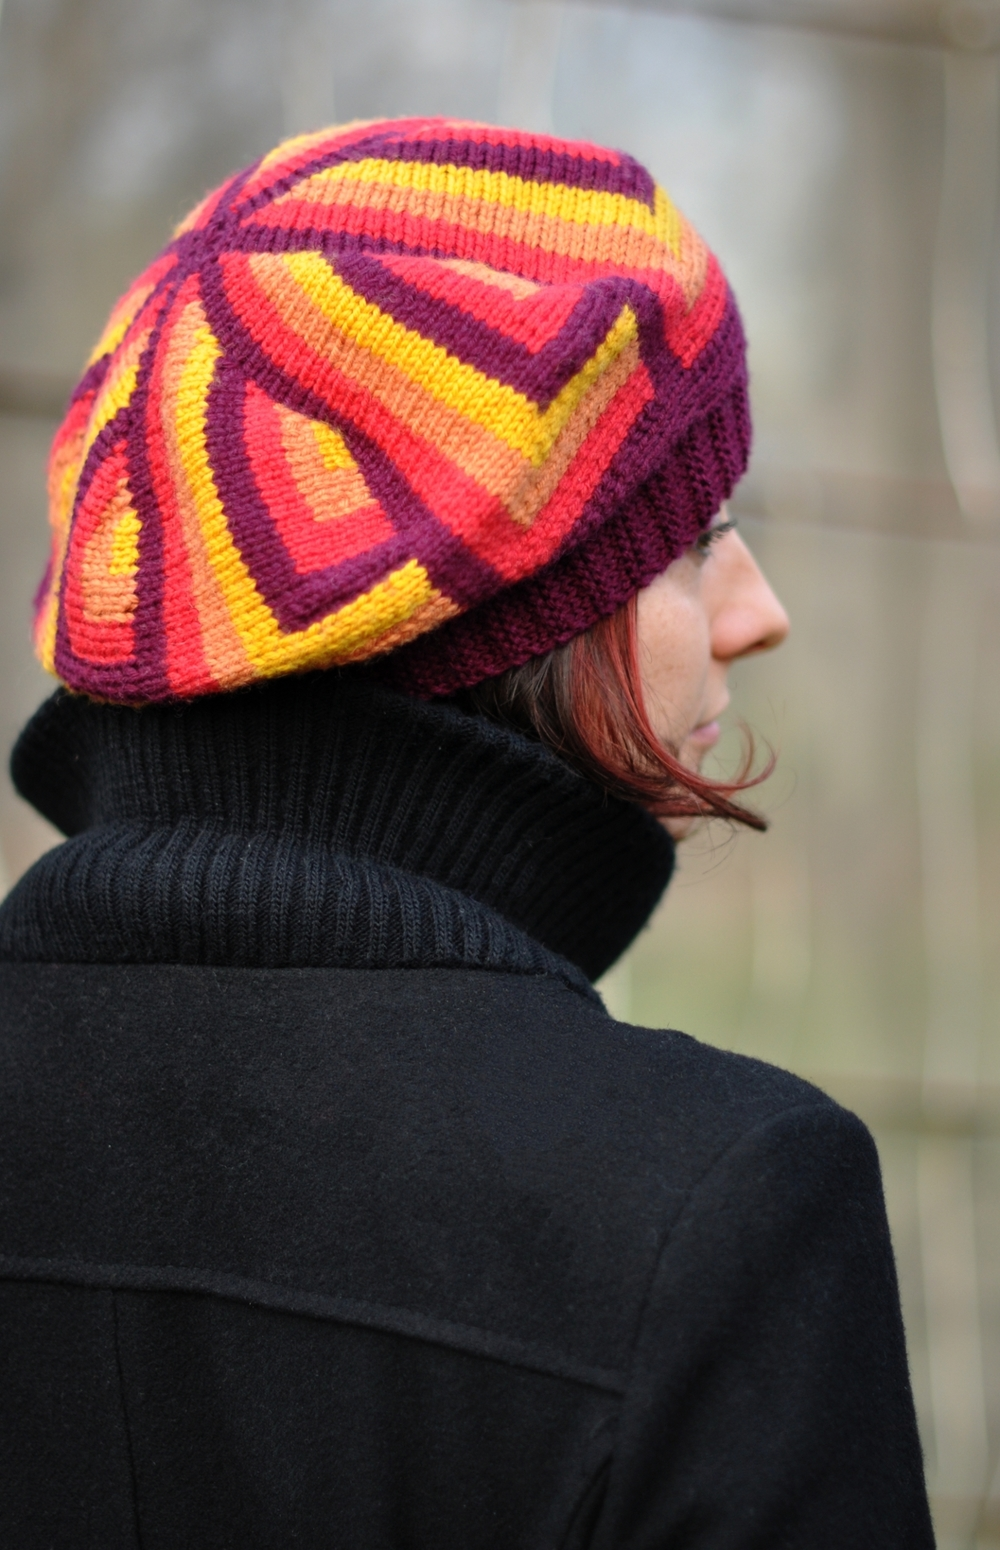 Sherbert Fountain sideways knit stranded Hat pattern